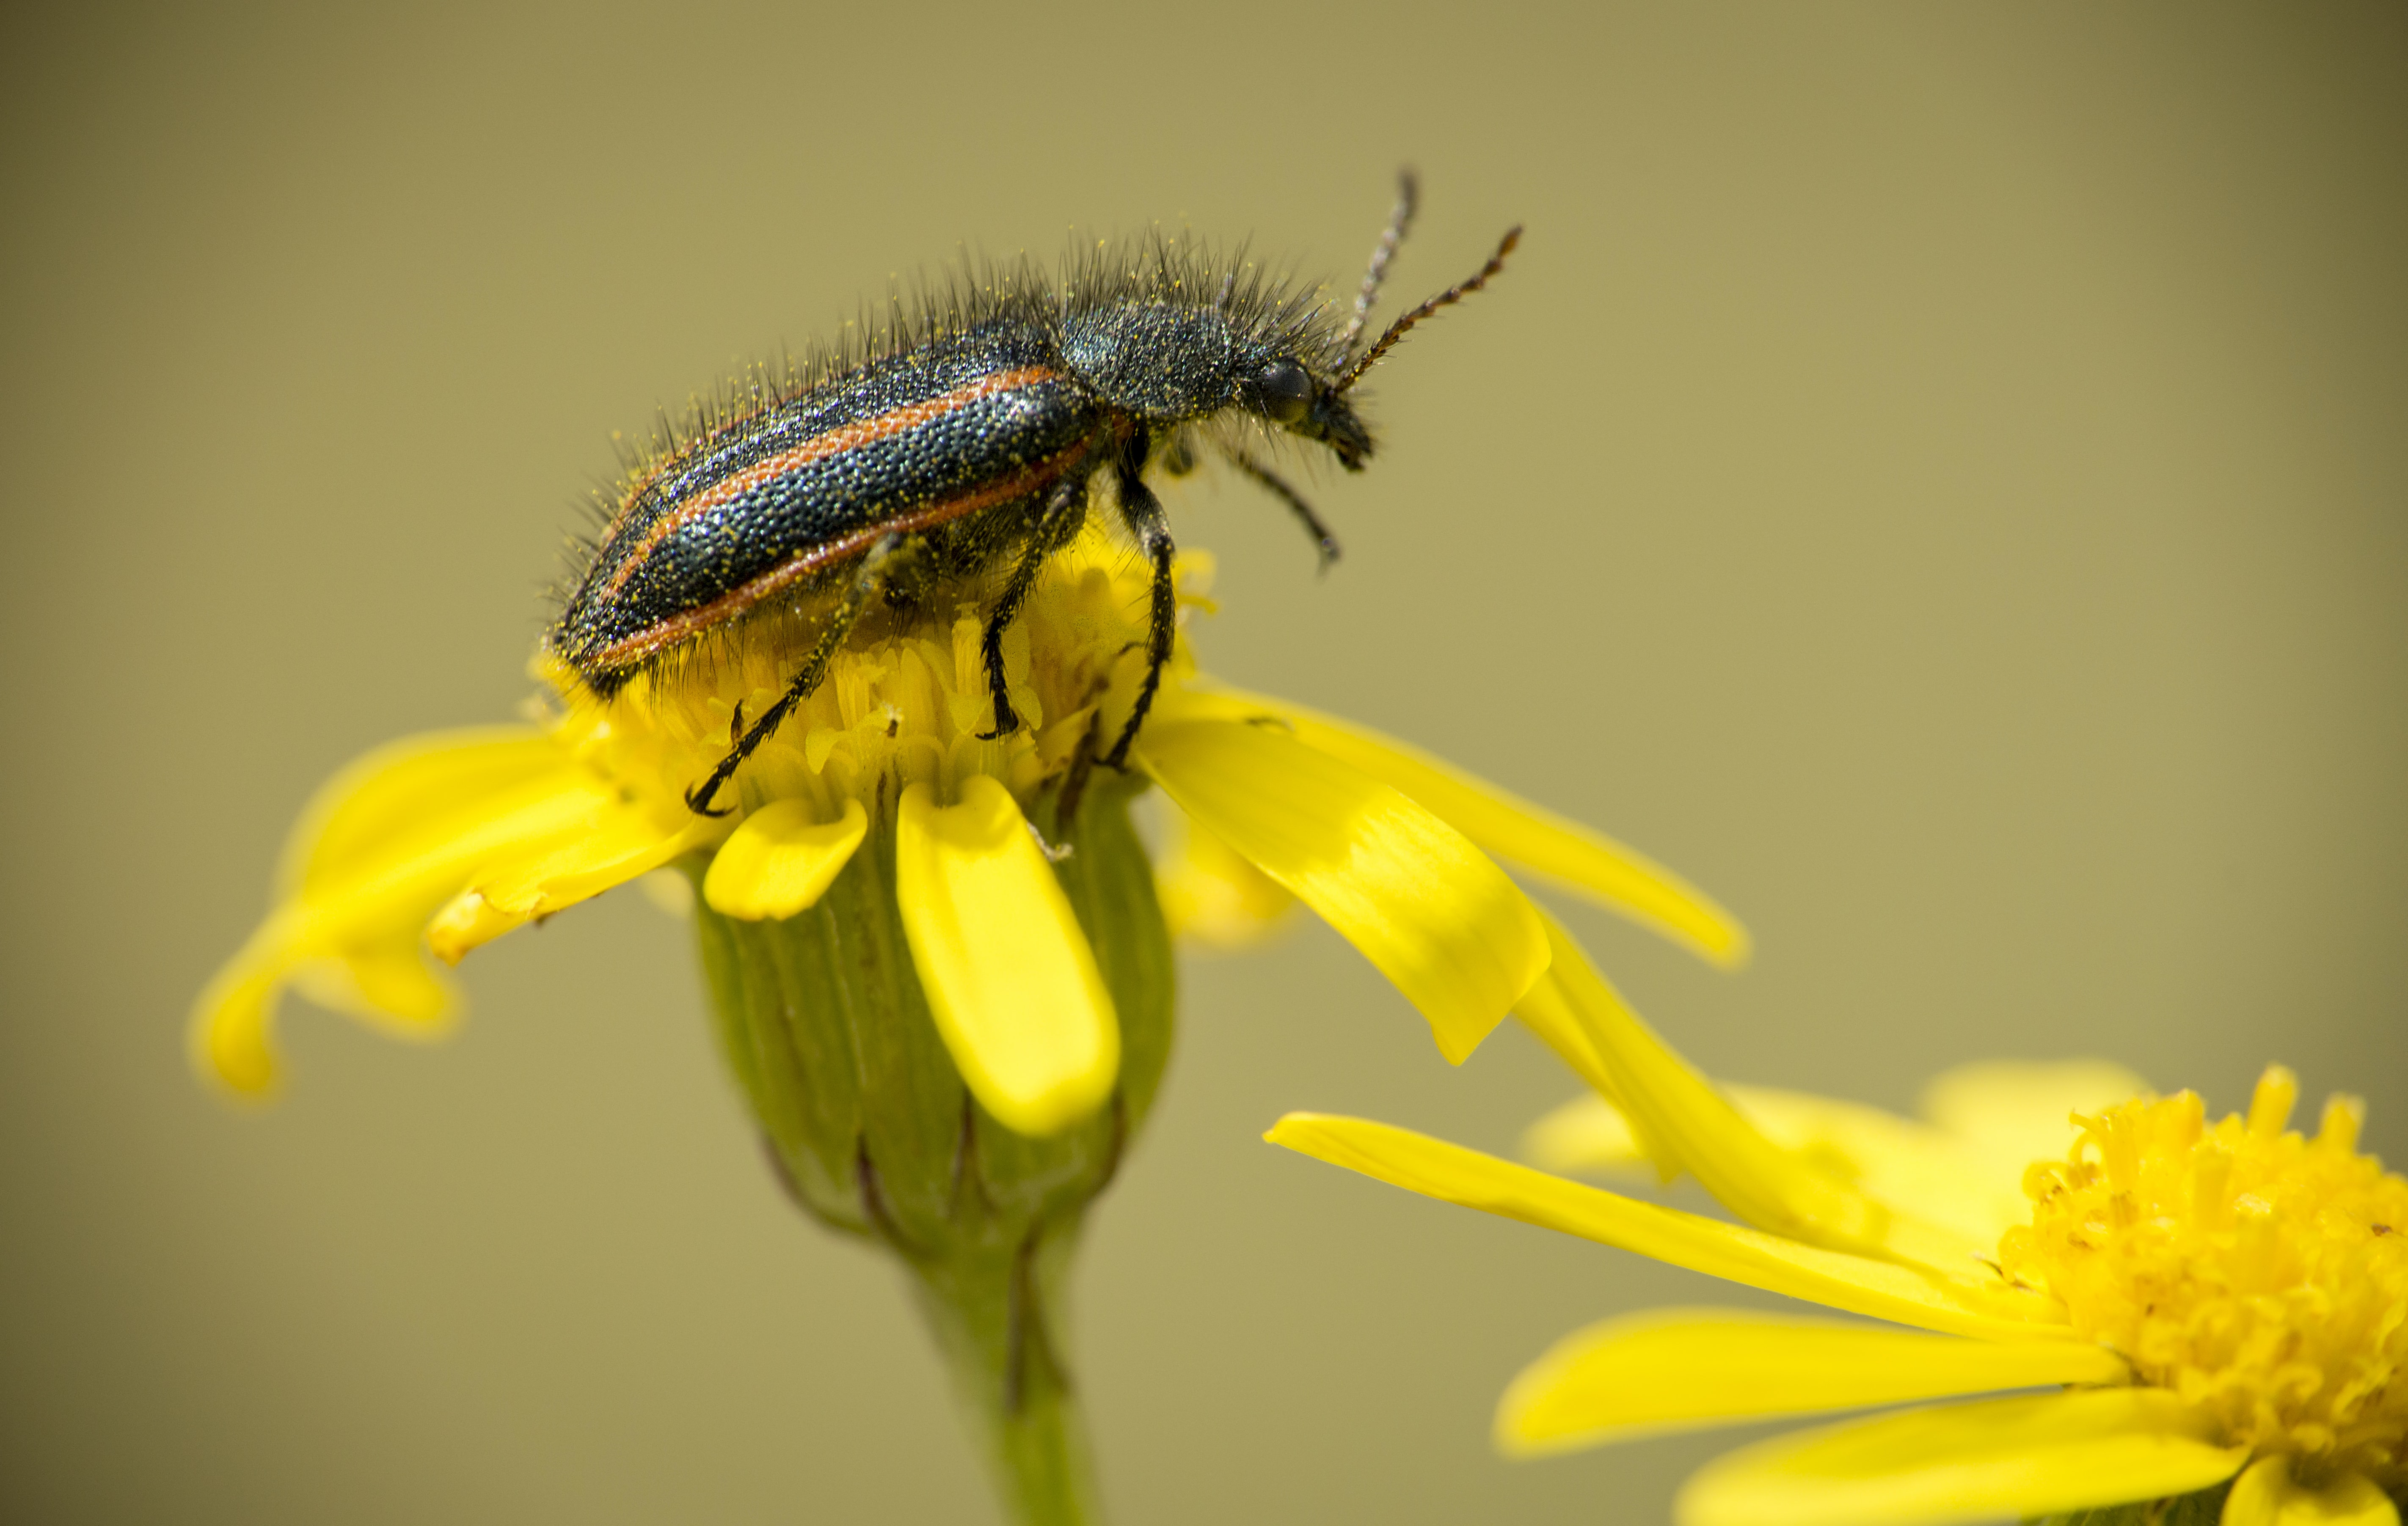 A shelled insect on top of a yellow flower